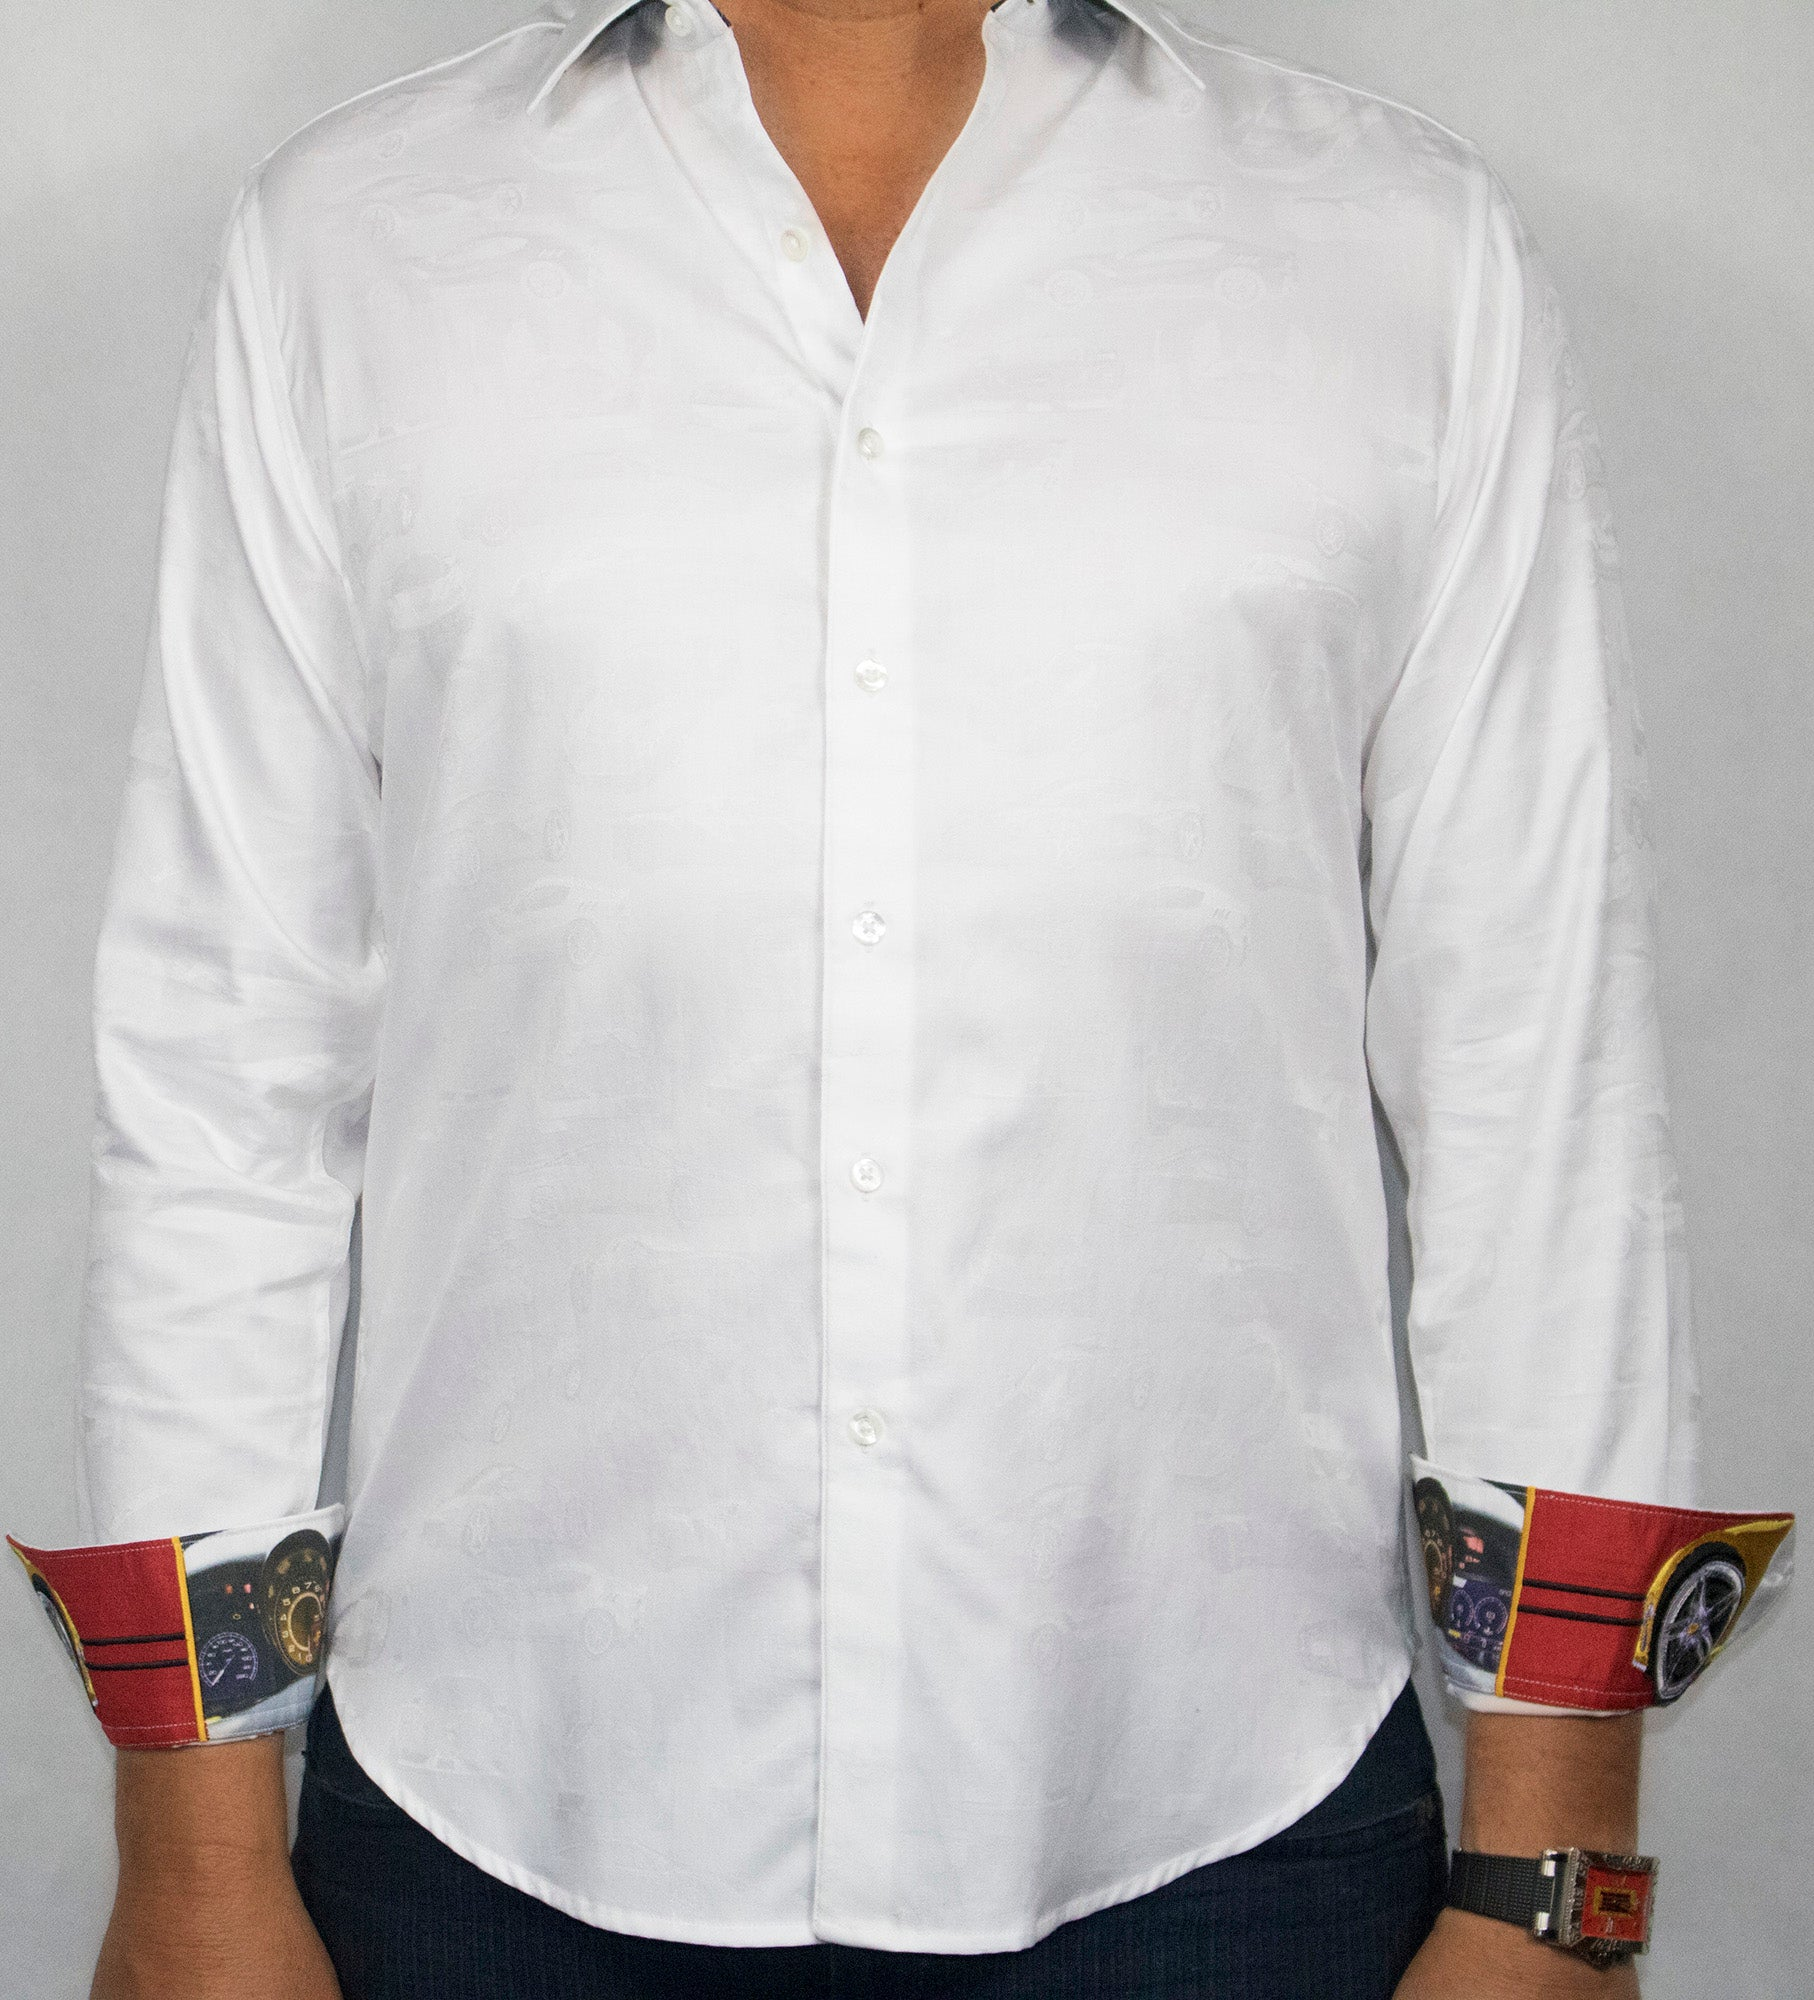 Robert Graham 2019 White The Seal Sport Shirt, made exclusively for The Club Carmel